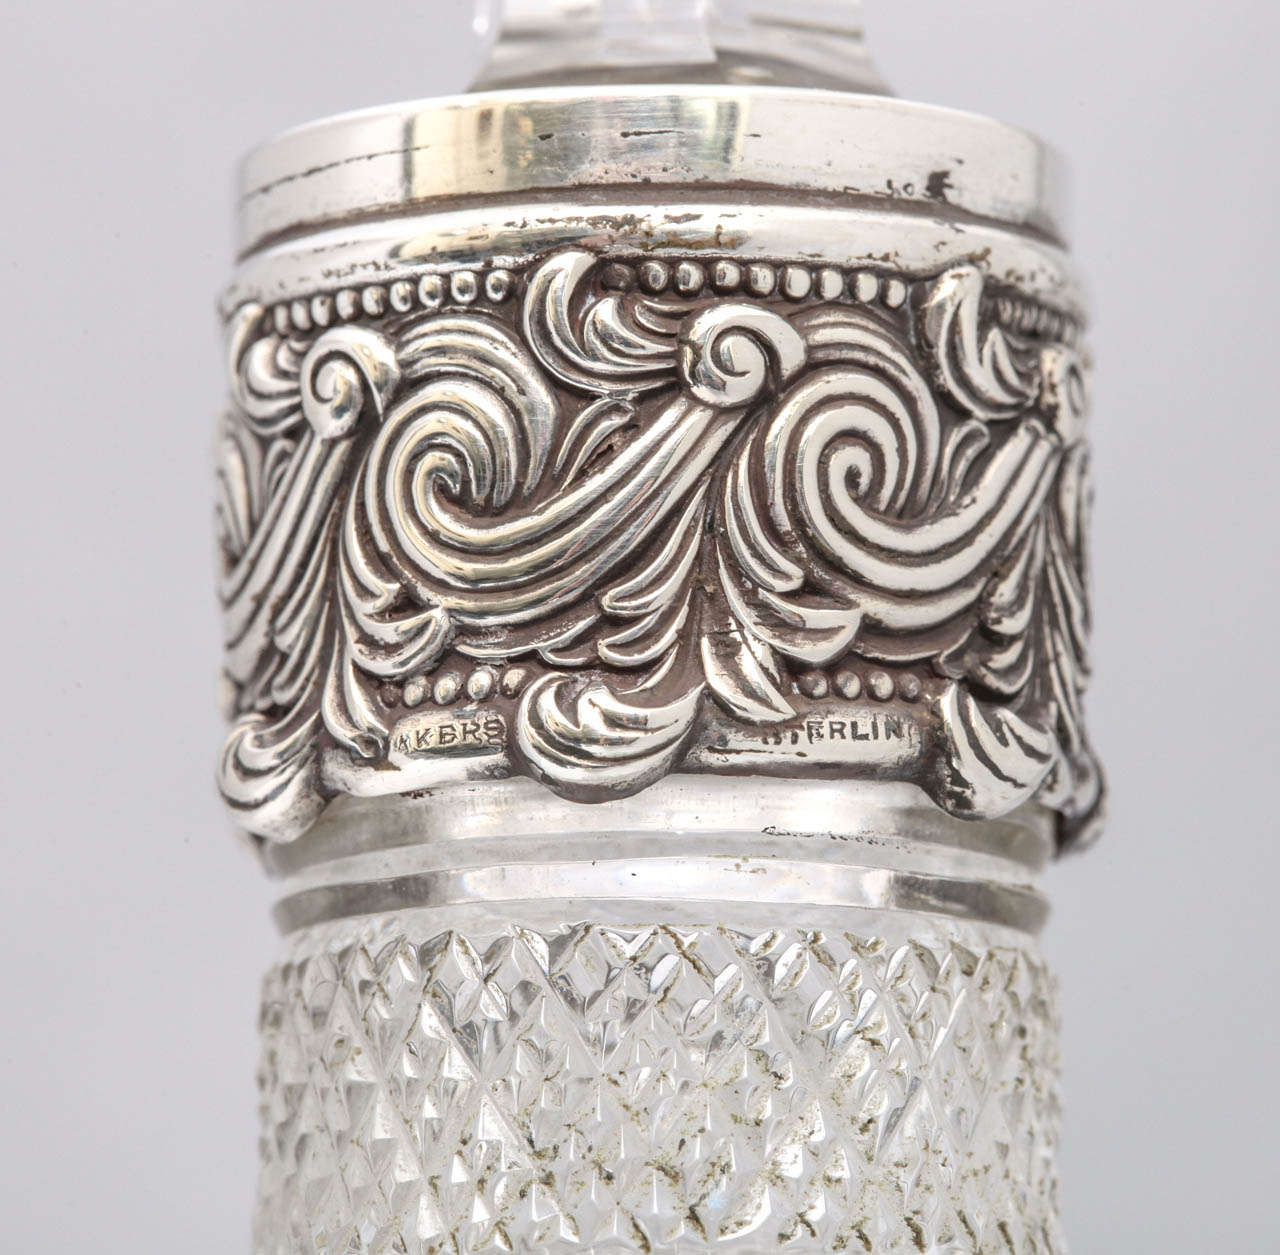 Very Rare Tall Sterling Silver-Mounted Tiffany & Co. Decanter For Sale 3